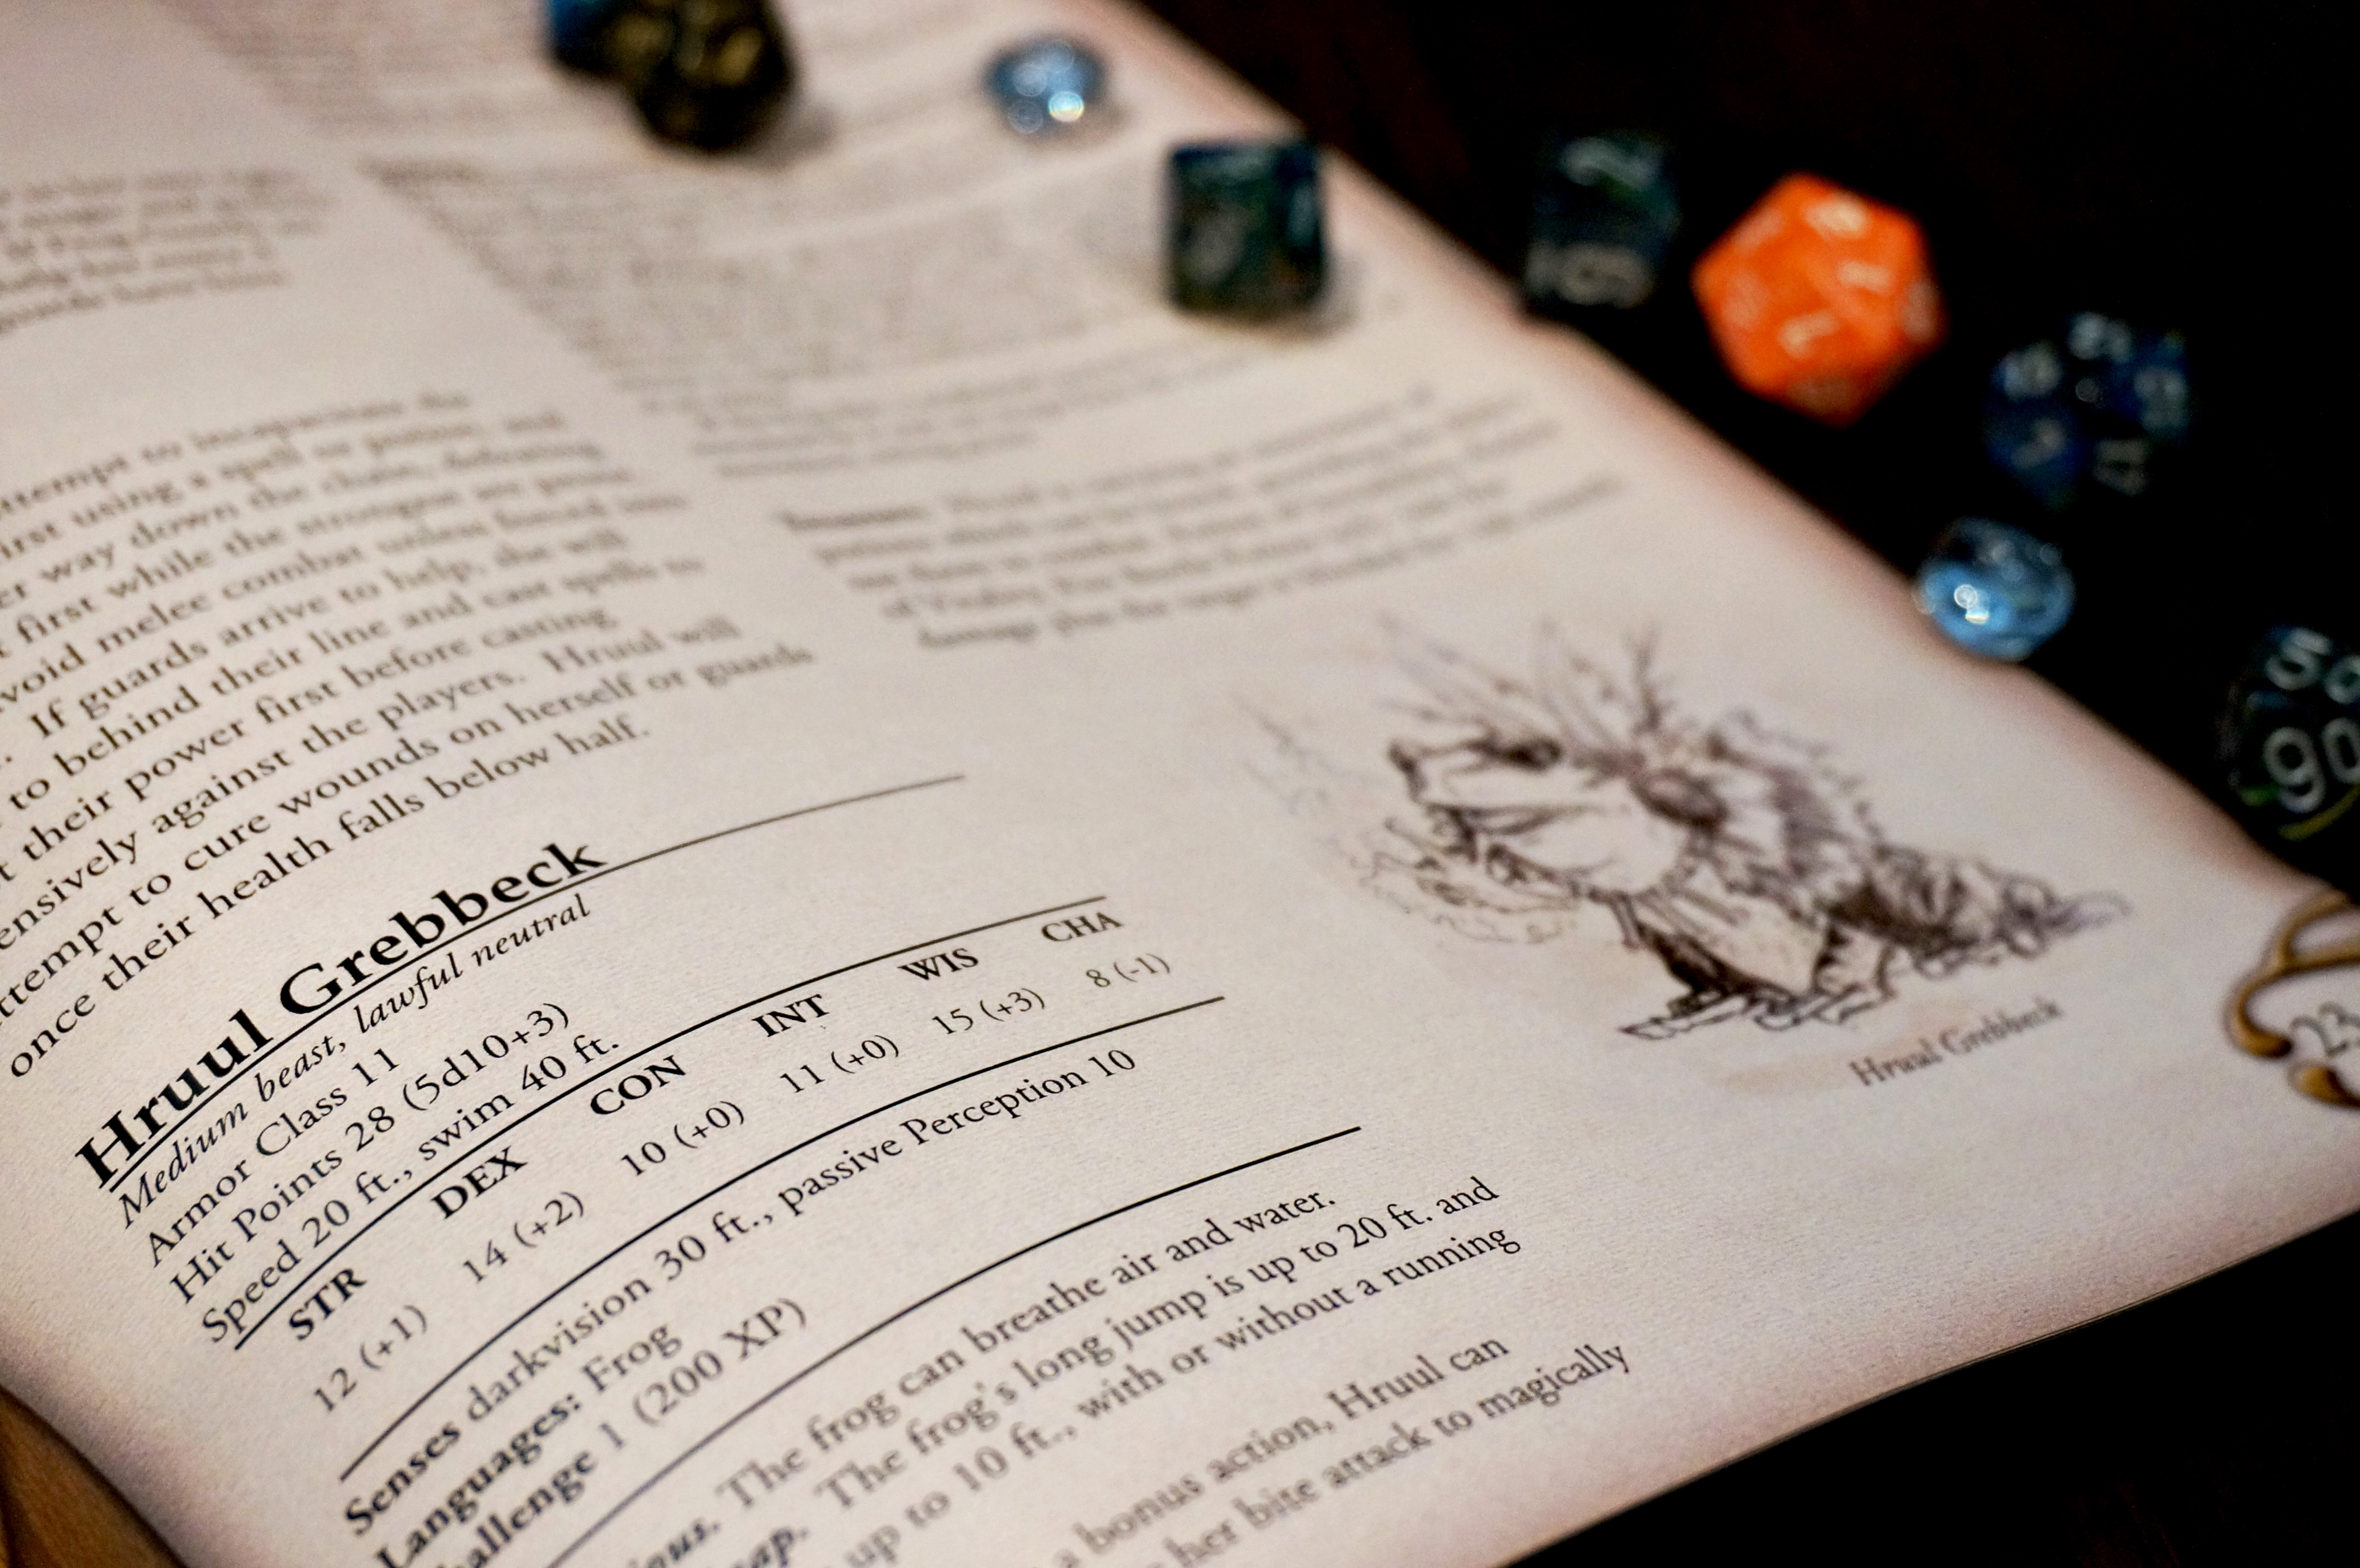 Hruul's Encounter Page